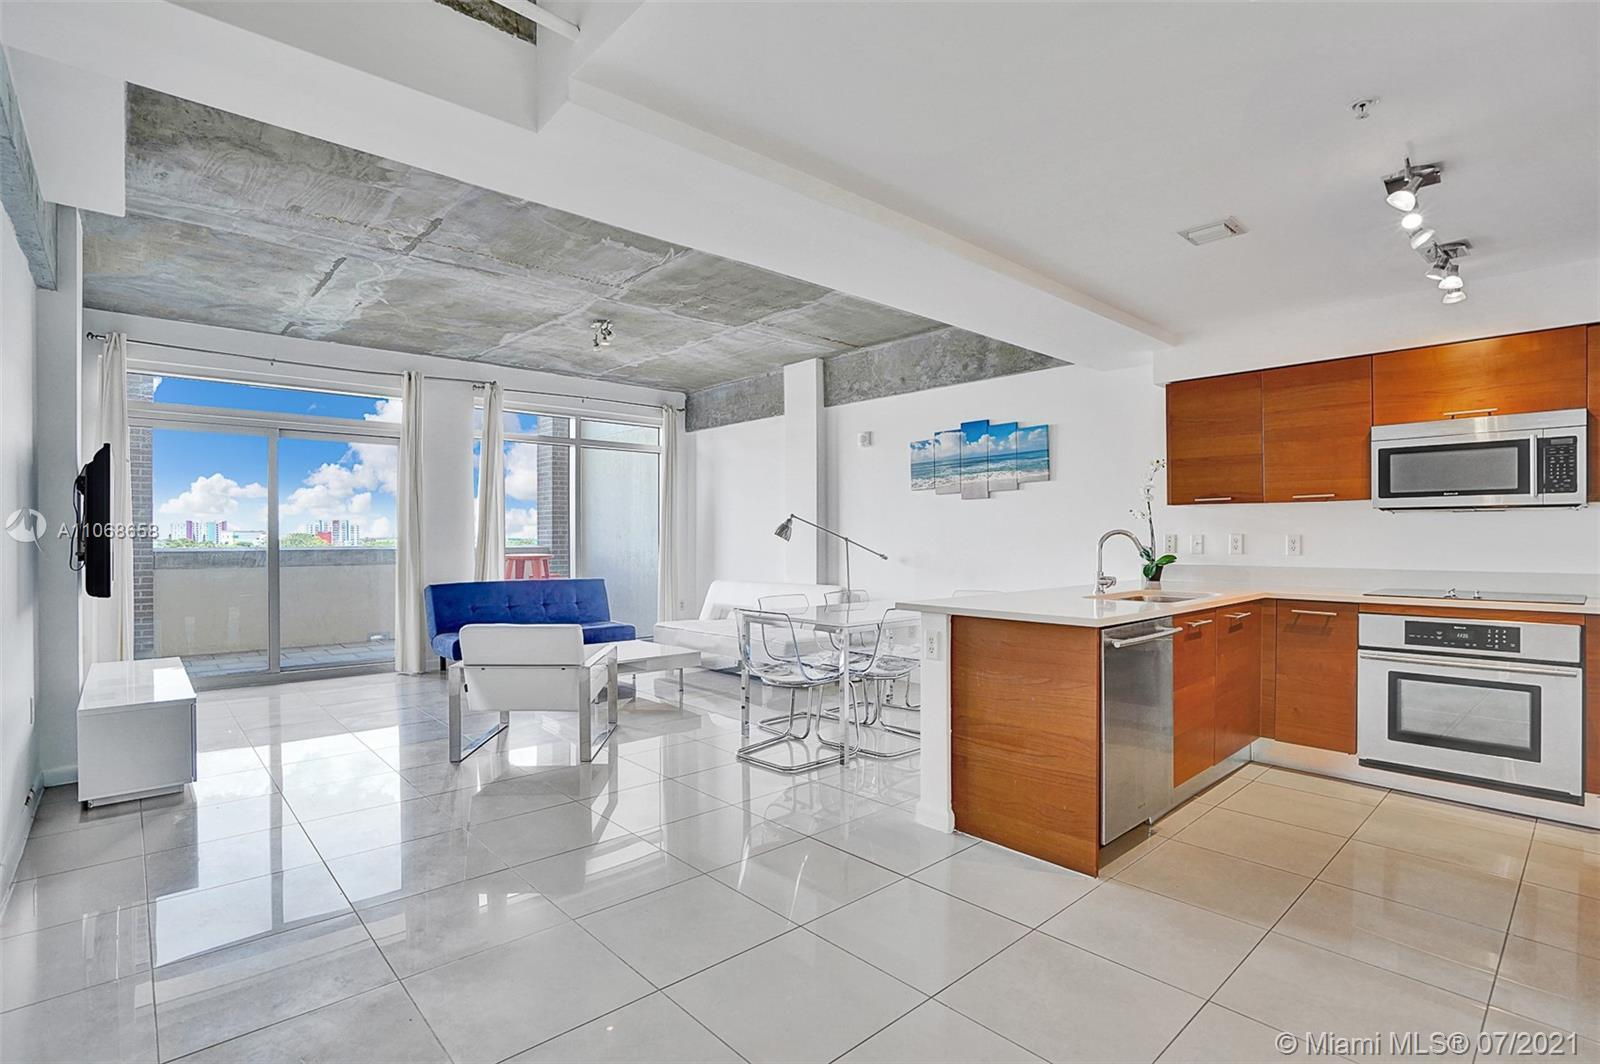 Spacious two story condo at Midblock in Midtown. This chic two bedroom condo boasts porcelain floori